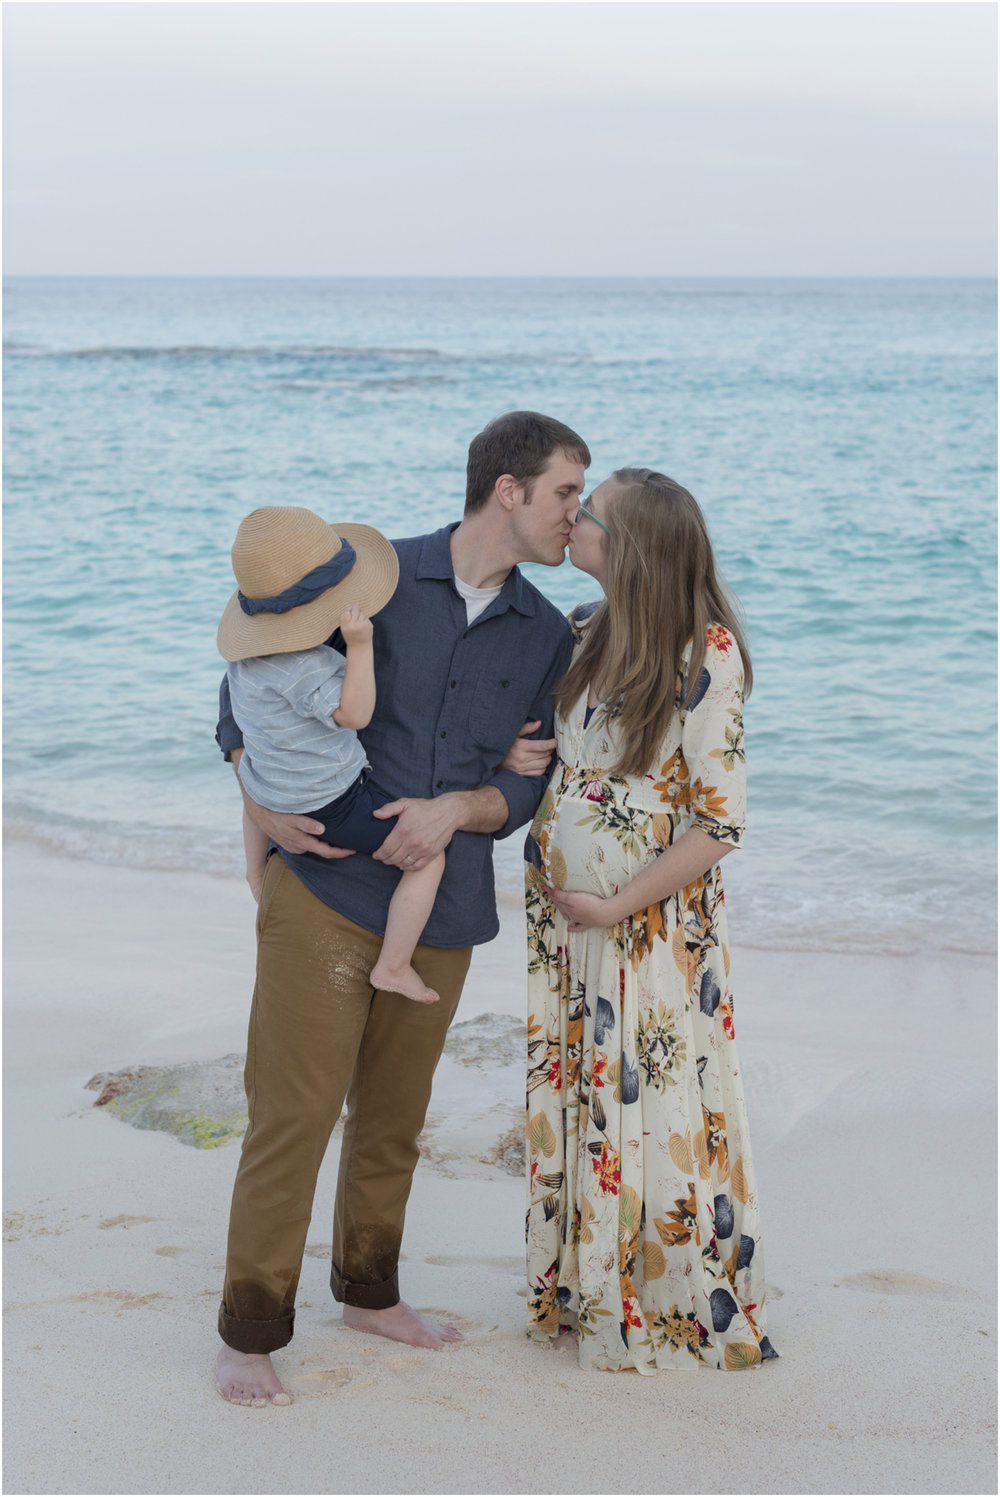 ©FianderFoto_Heather_Maternity_Bermuda_9.jpg